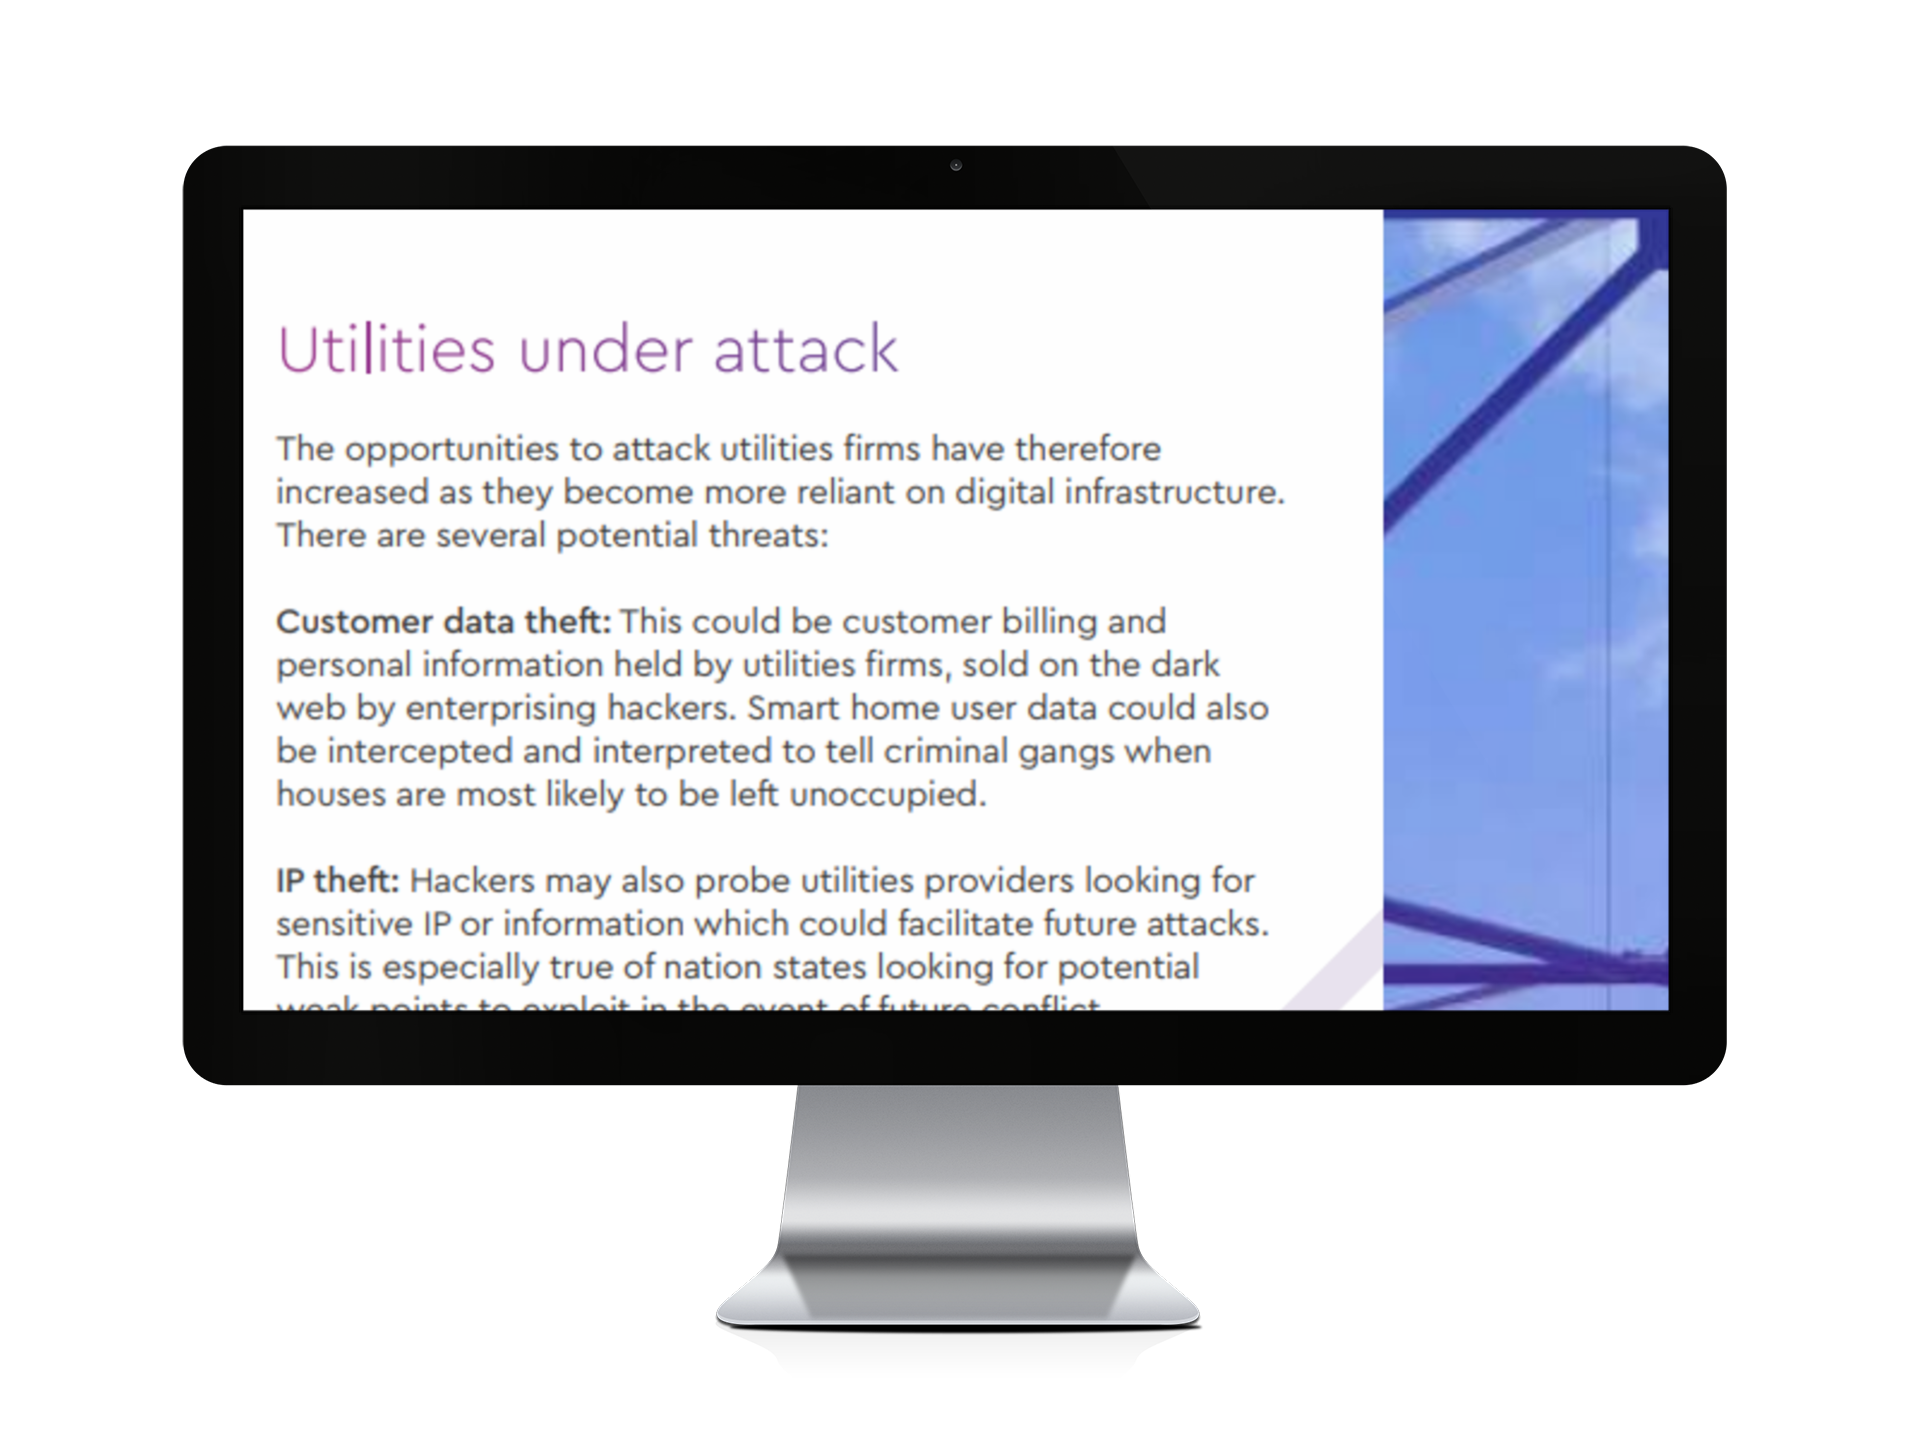 Protecting critical infrastructure: why utilities firms need to